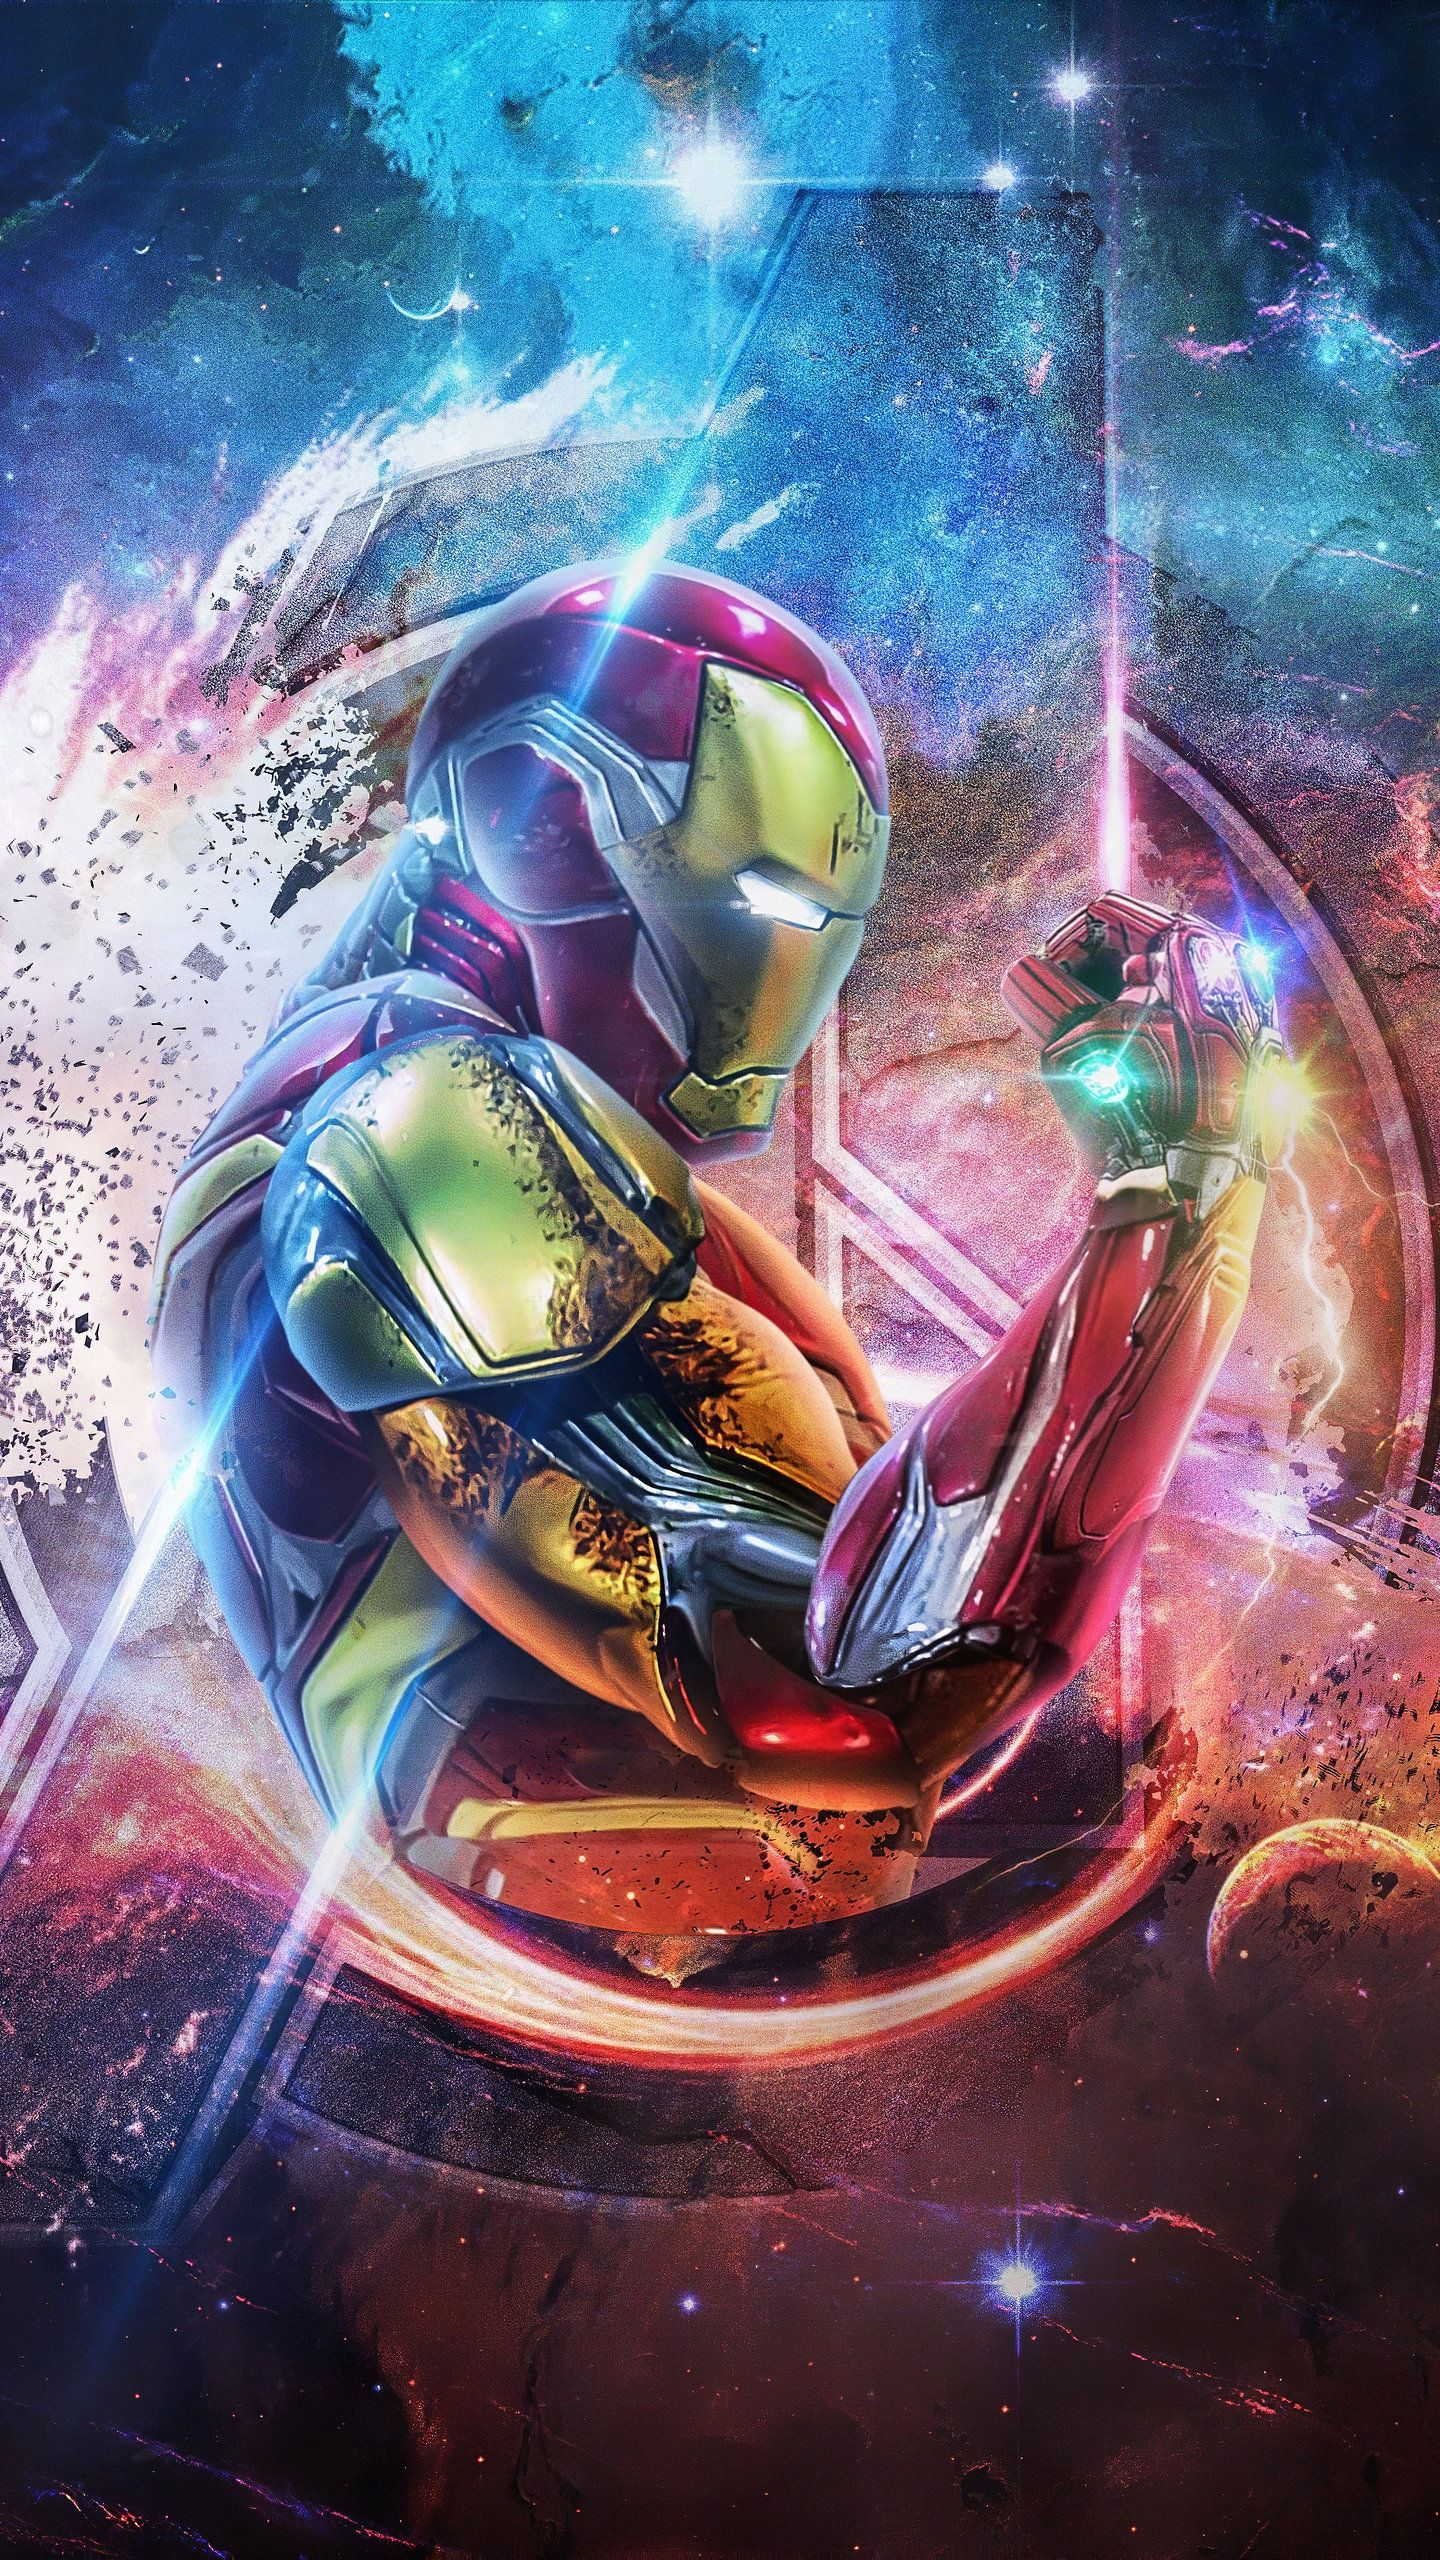 Iron Man 4k Avengers Endgame Hd Wallpaper In 2020 Iron Man Art Superhero Wallpaper Marvel Wallpaper